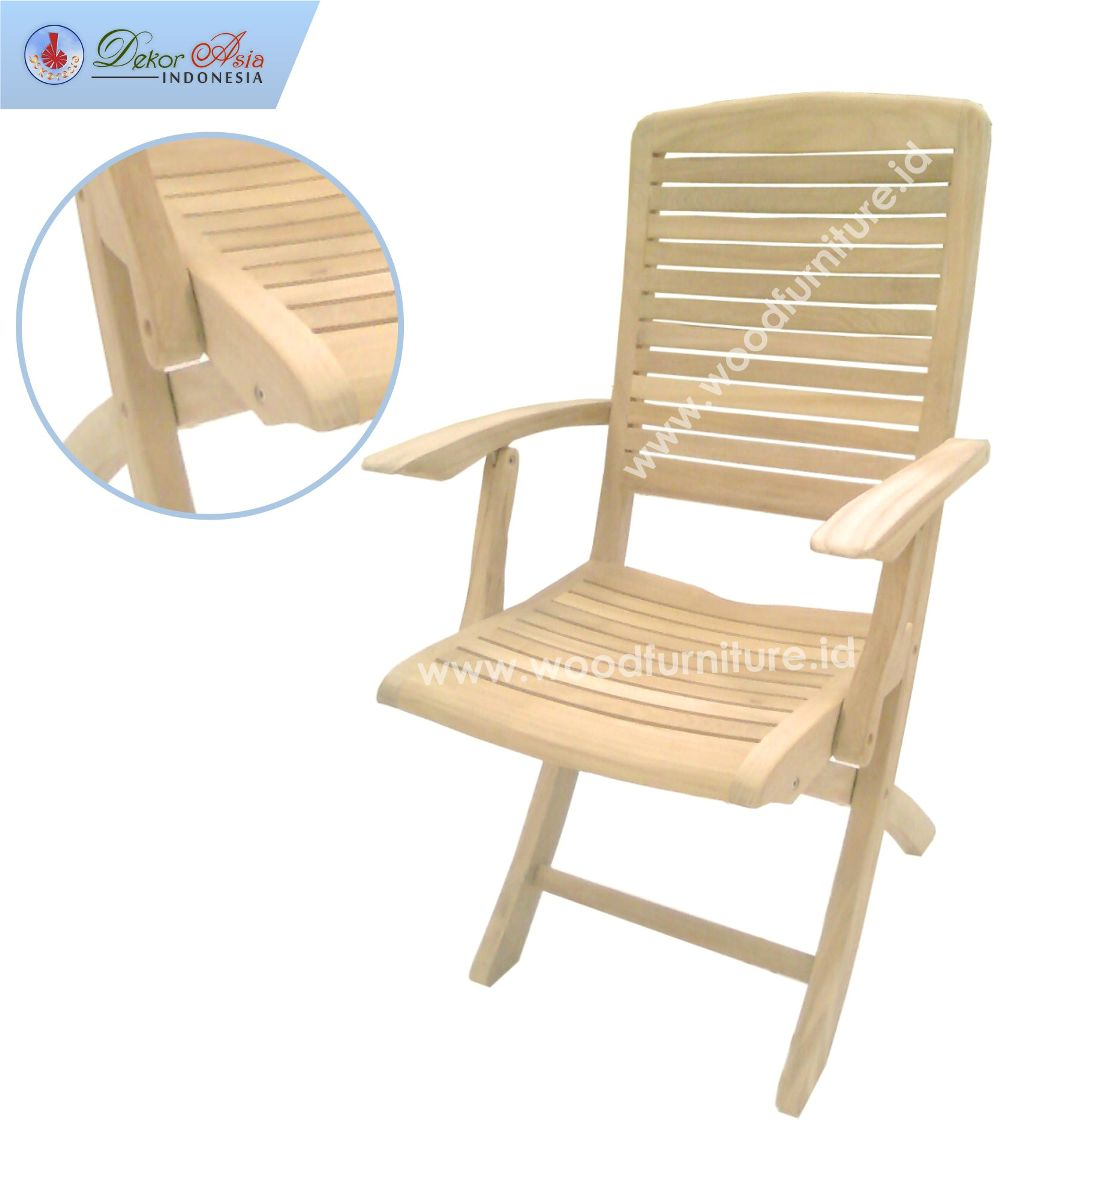 HIU 1 ARM CHAIR SS